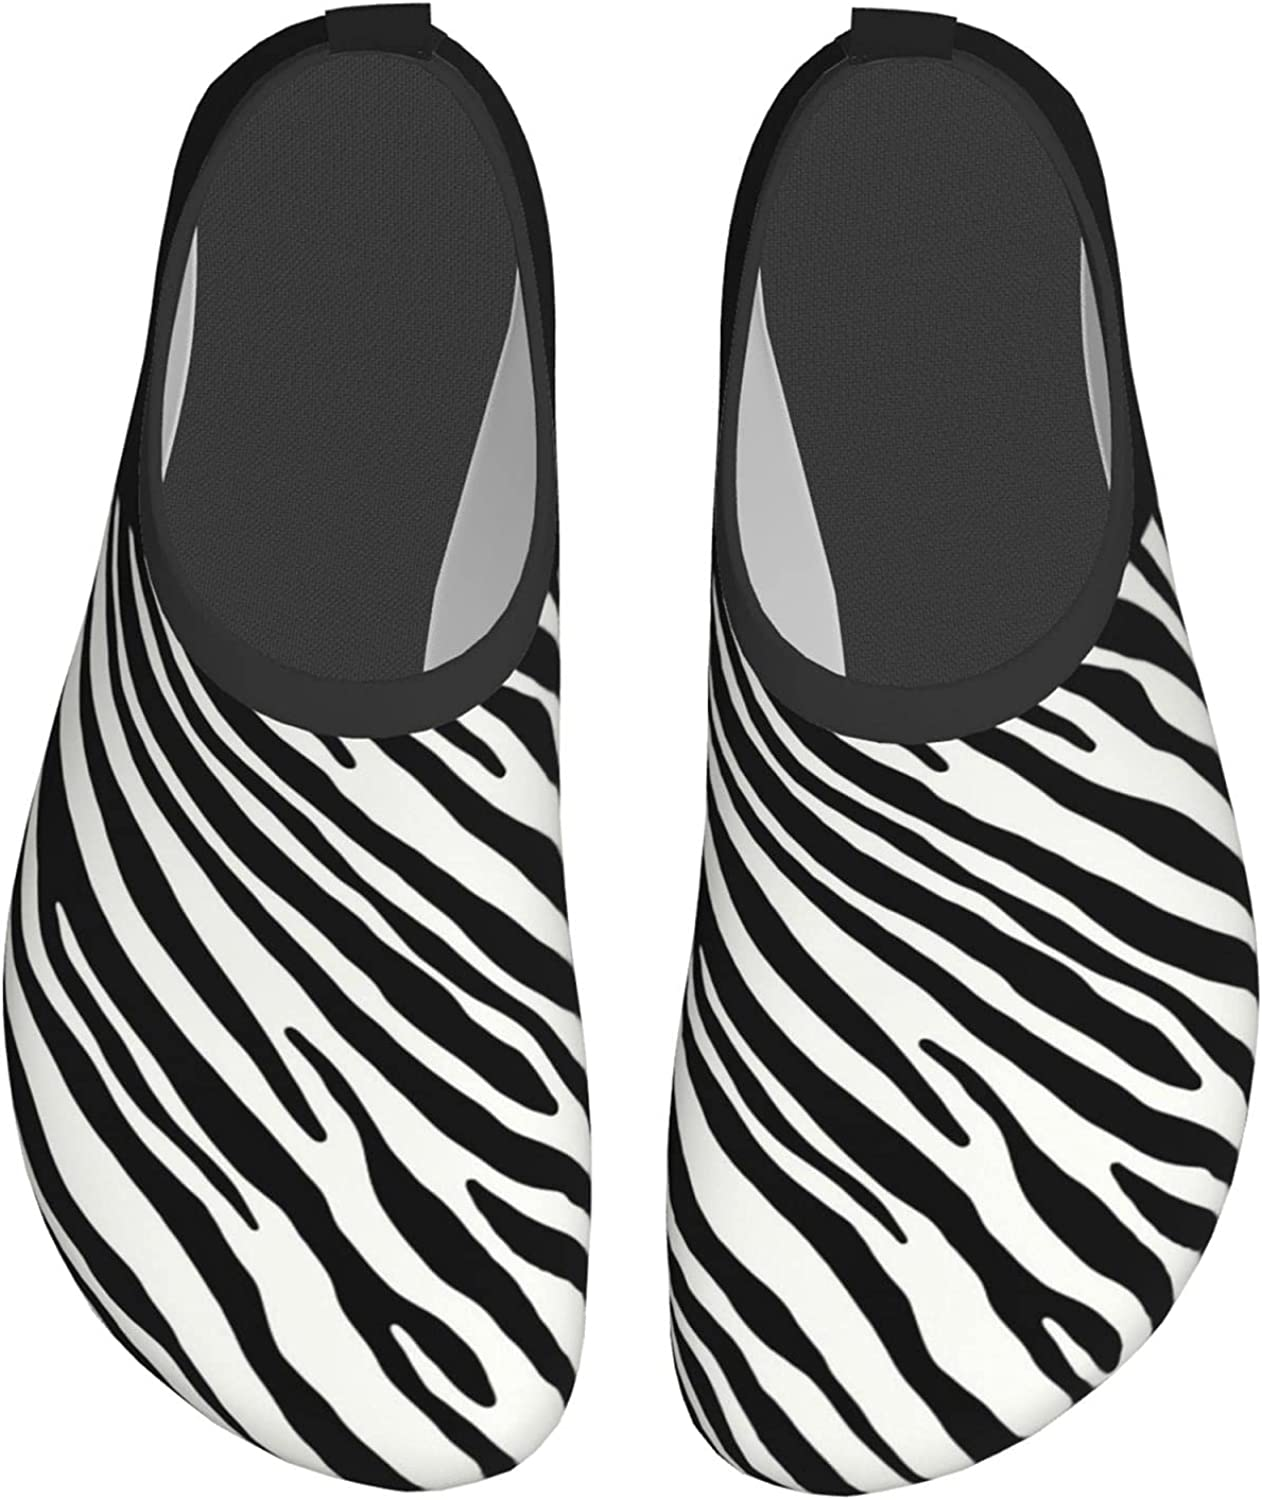 DISGOWONG Illustration of Zebra Pattern Water Shoes Beach Pool Shoes Quick-Dry Aqua Yoga Socks Beach Swim Sports Outdoor for Women and Men 12 inch